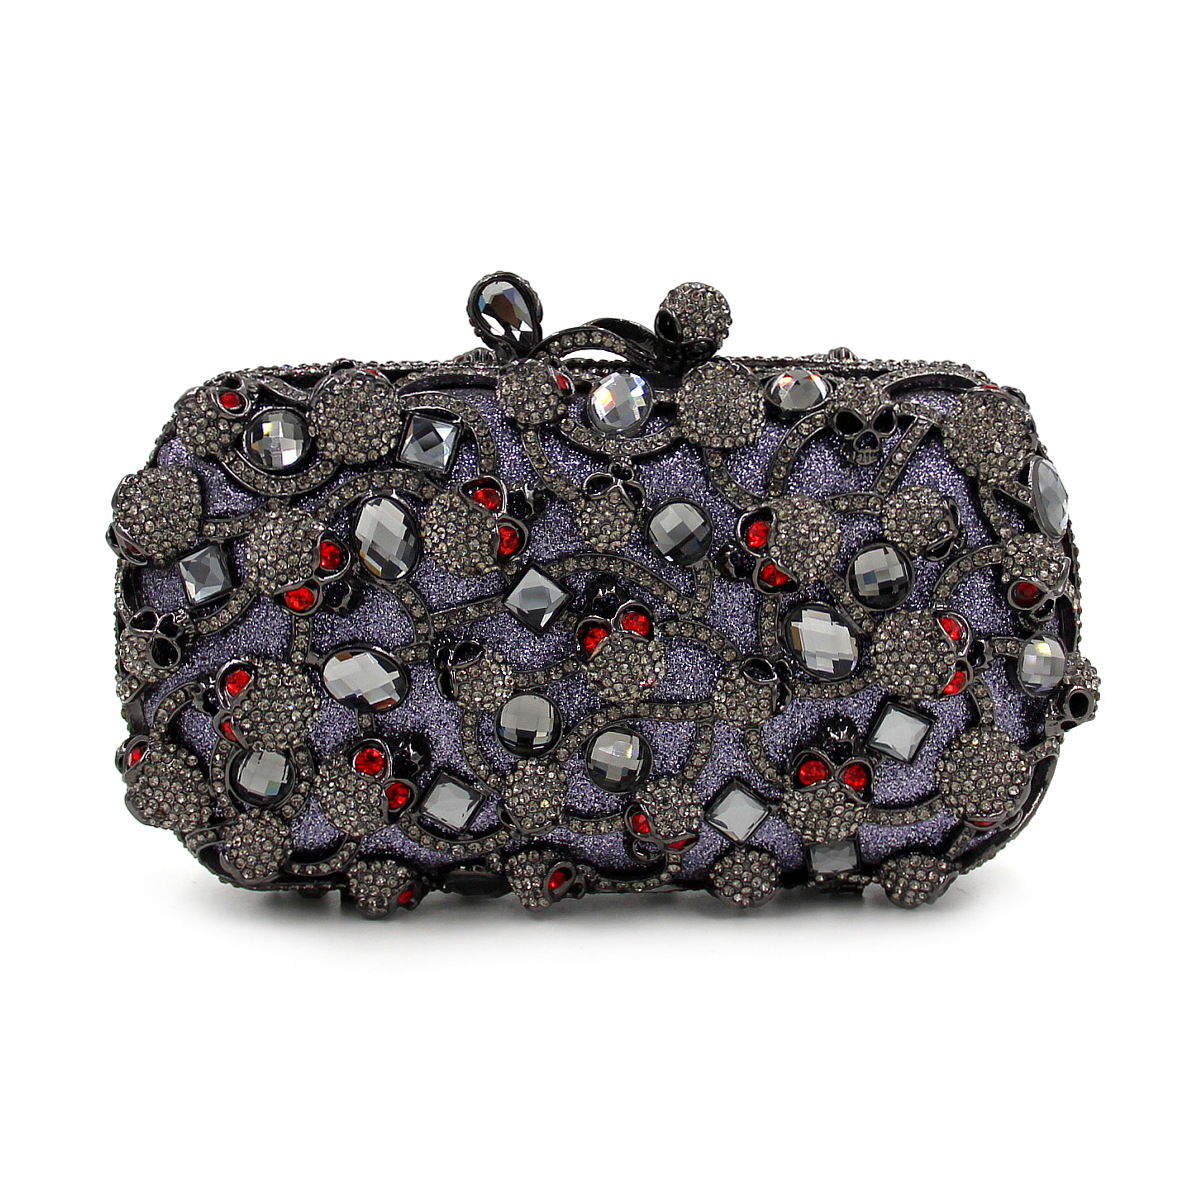 2017 New Day Clutches Luxury Diamond Red Skull Halloween Dinner Bag Full Drill Hollow Chains Ladies Evening Bags Handbags Purses